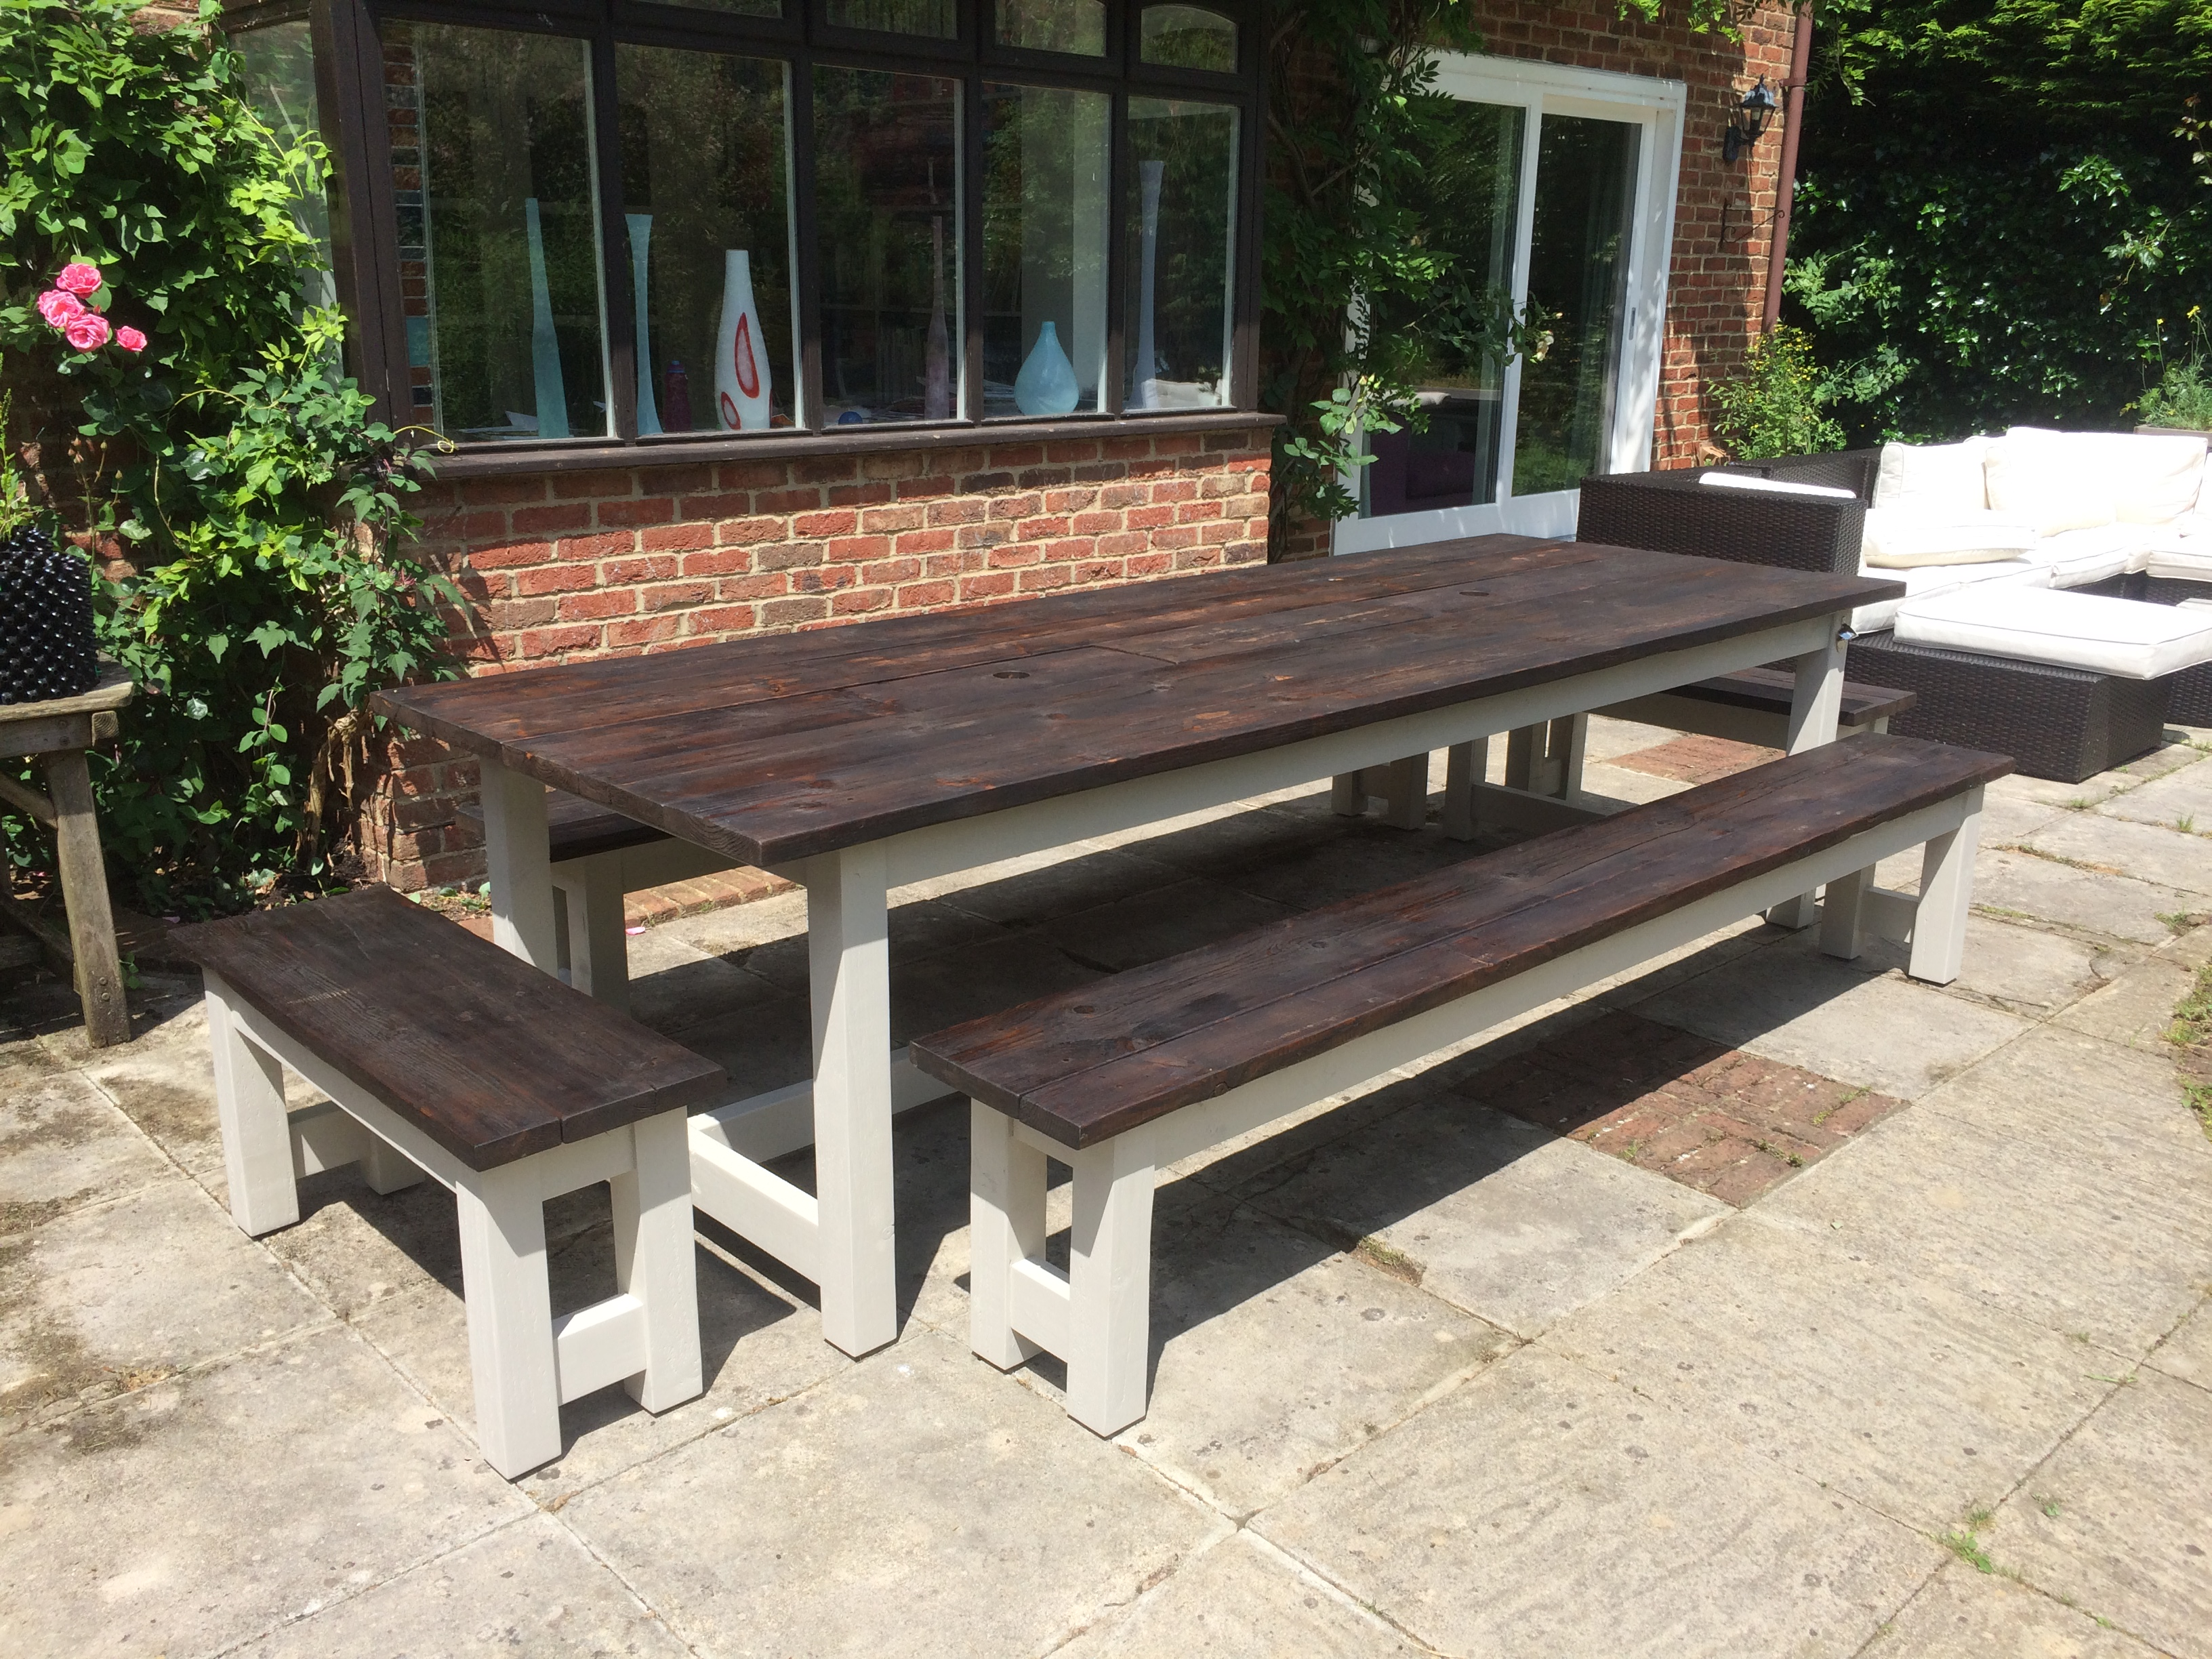 3m Patio table set